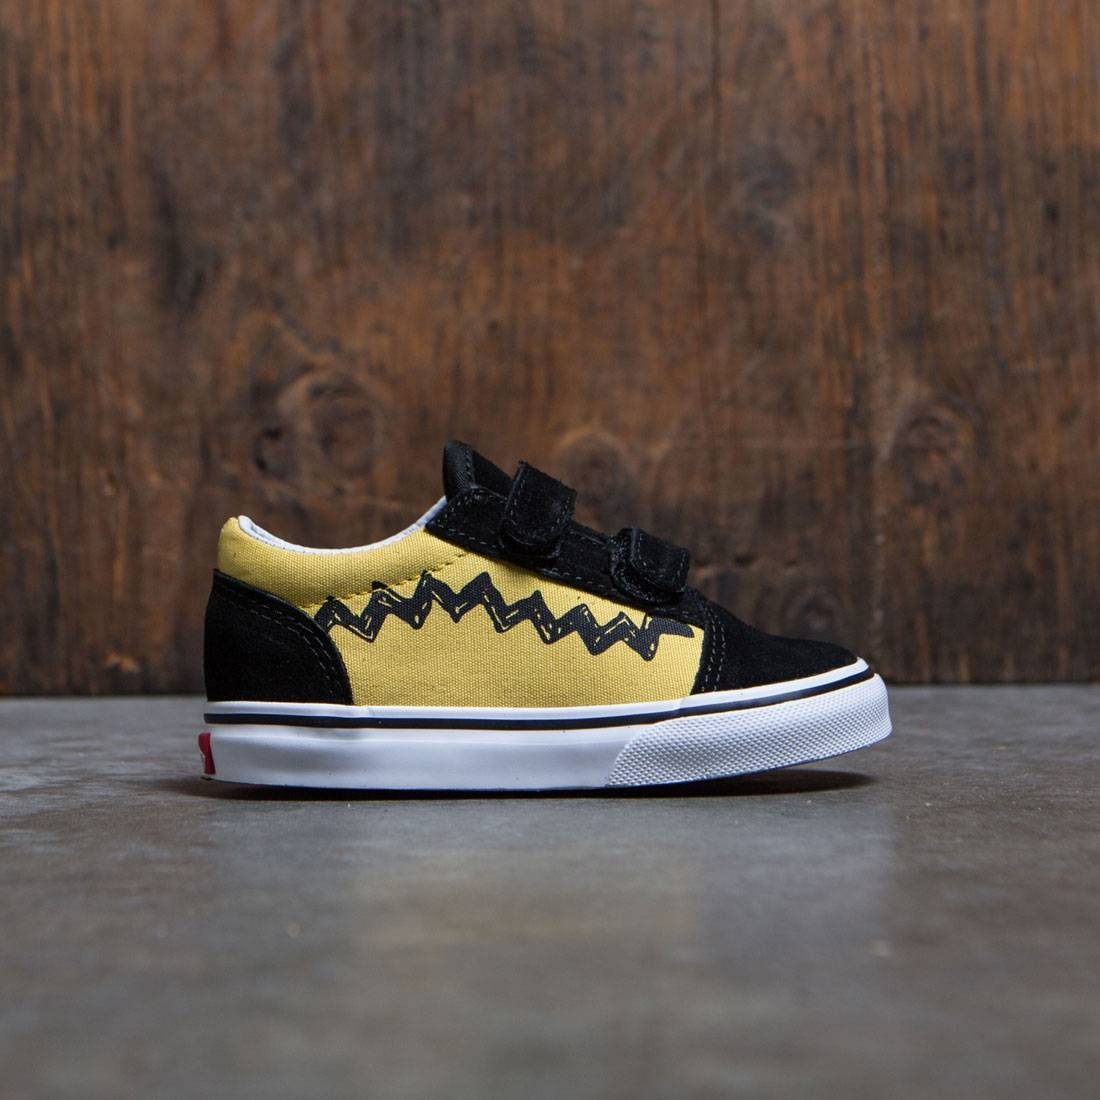 vans old skool x peanuts